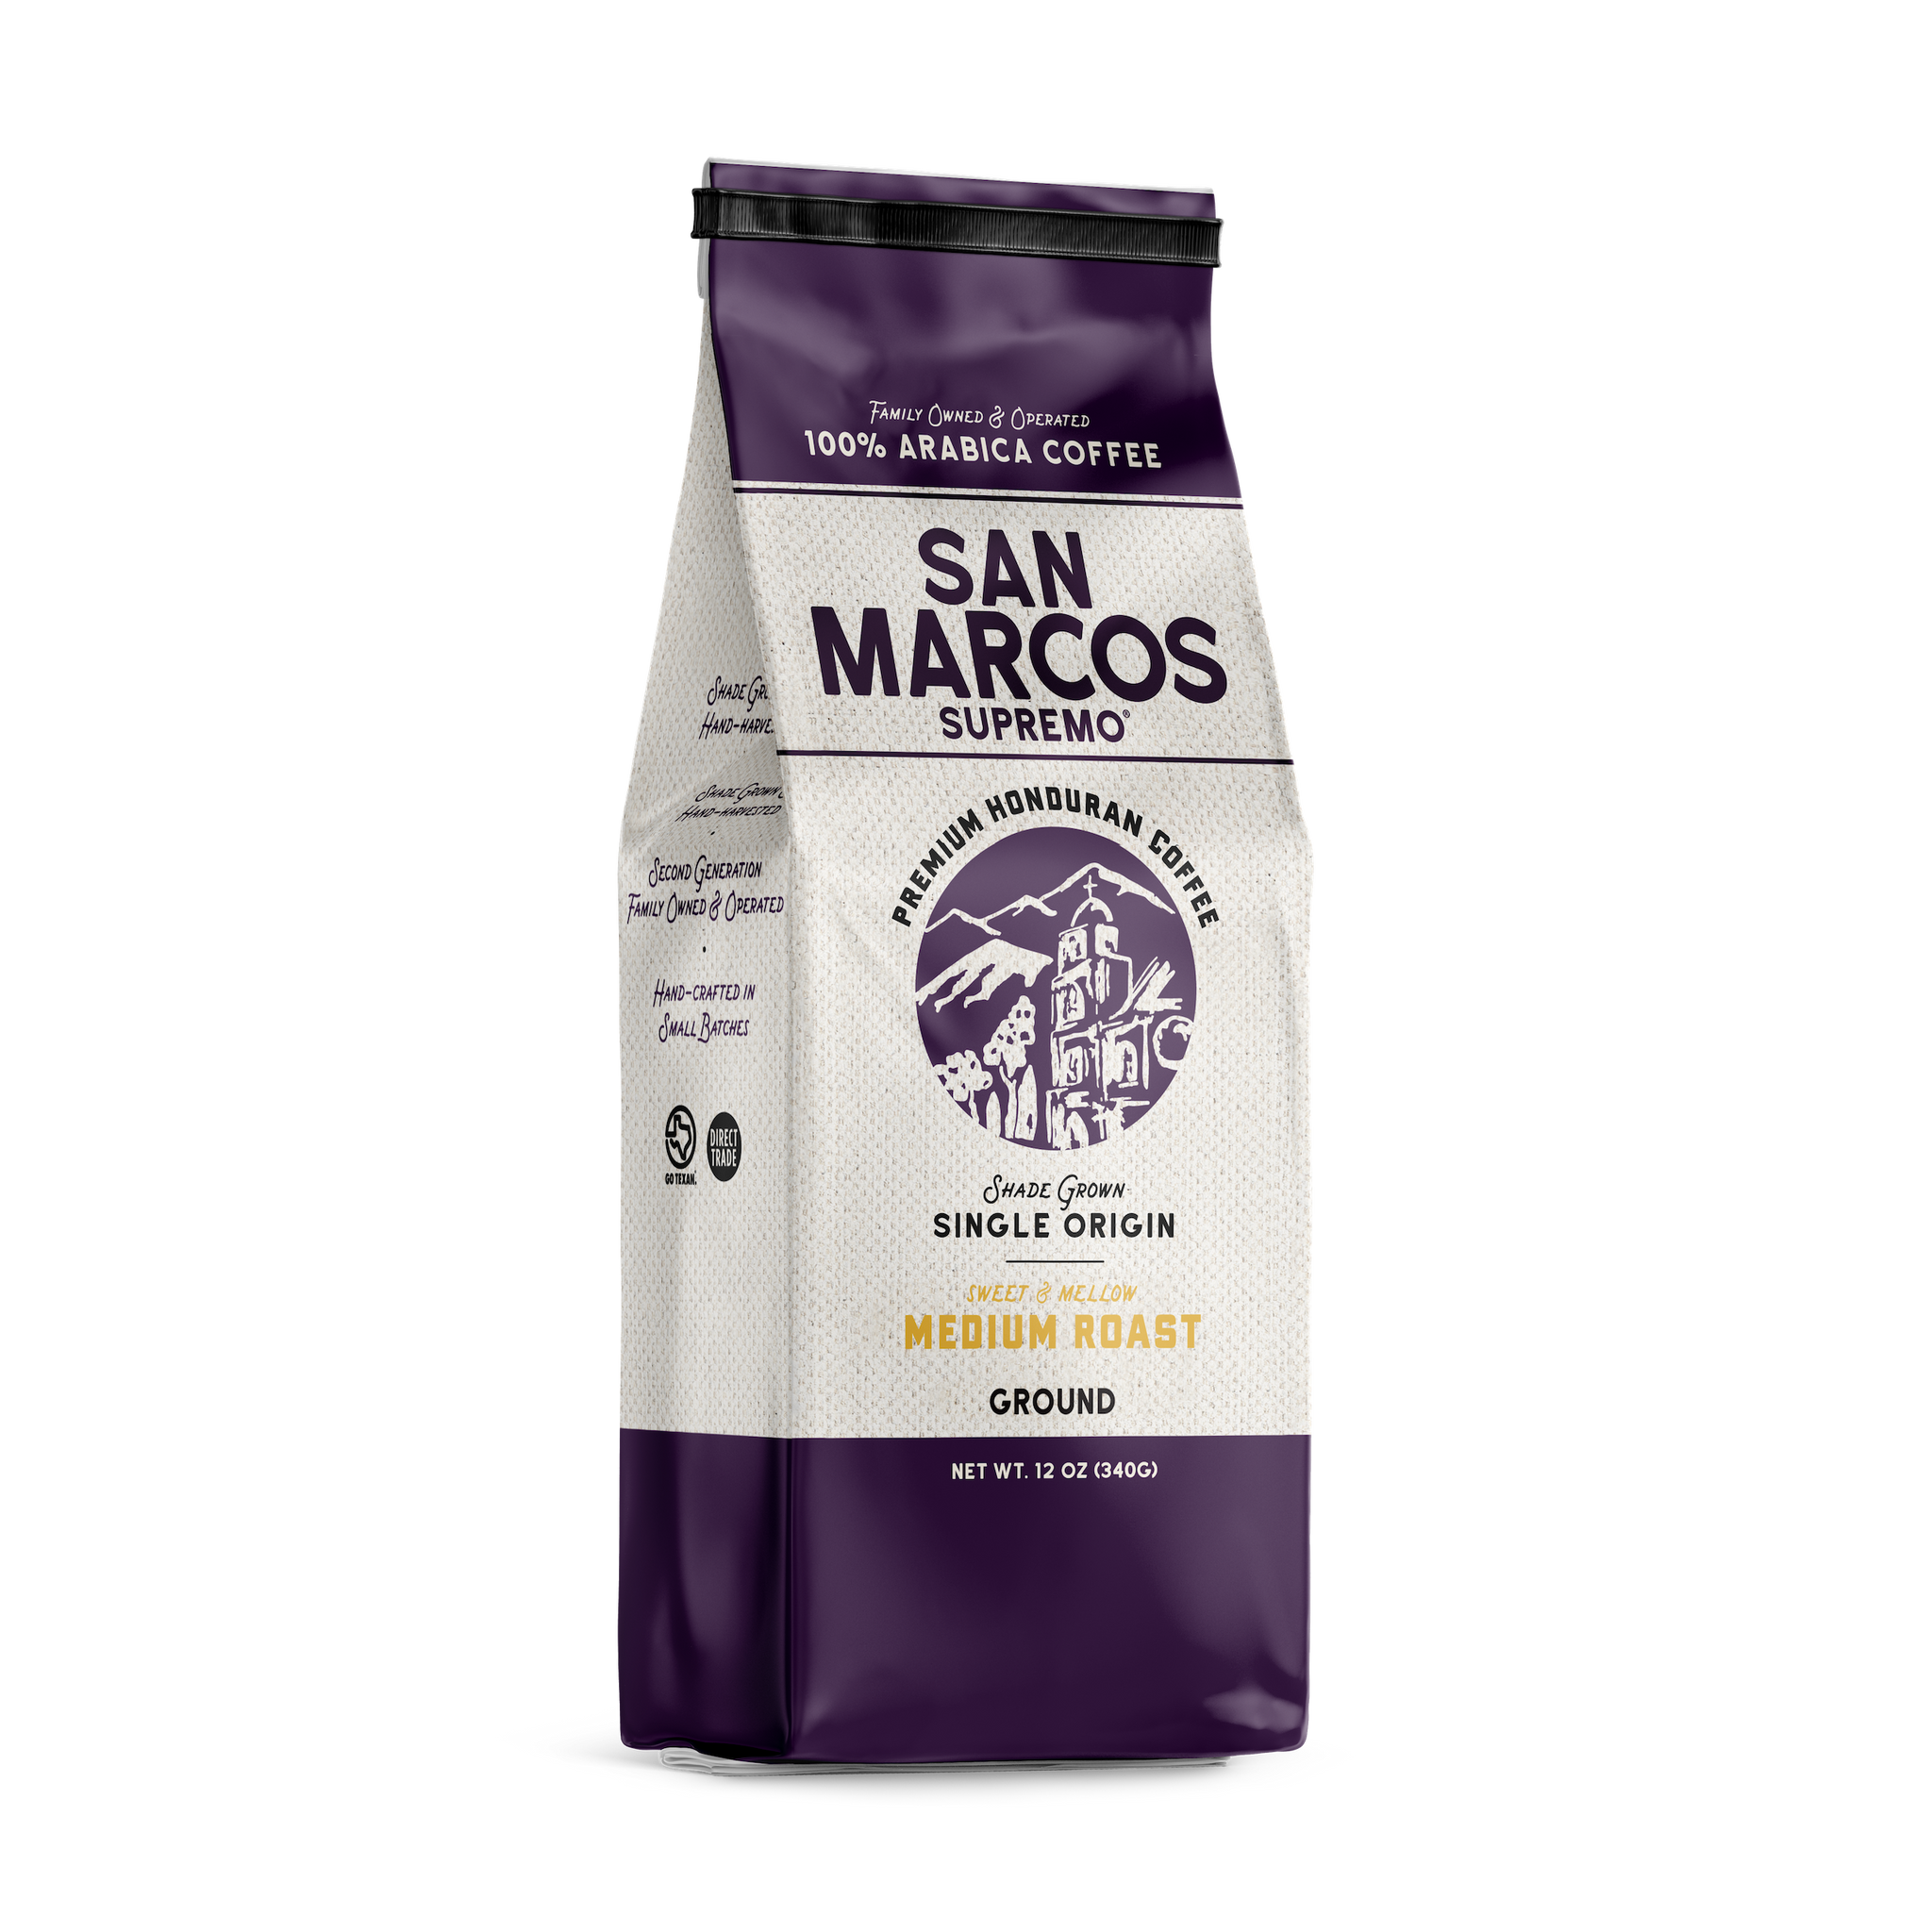 Our strictly High Grown Cafe San Marcos Supremo® (SHG), offers Bright dominate hints of bittersweet notes & smoky overtones. With a full body that reveals the best flavor and instantly envelops your senses of both taste and smell. Most Popular for Espresso Blends, Strong & Bold